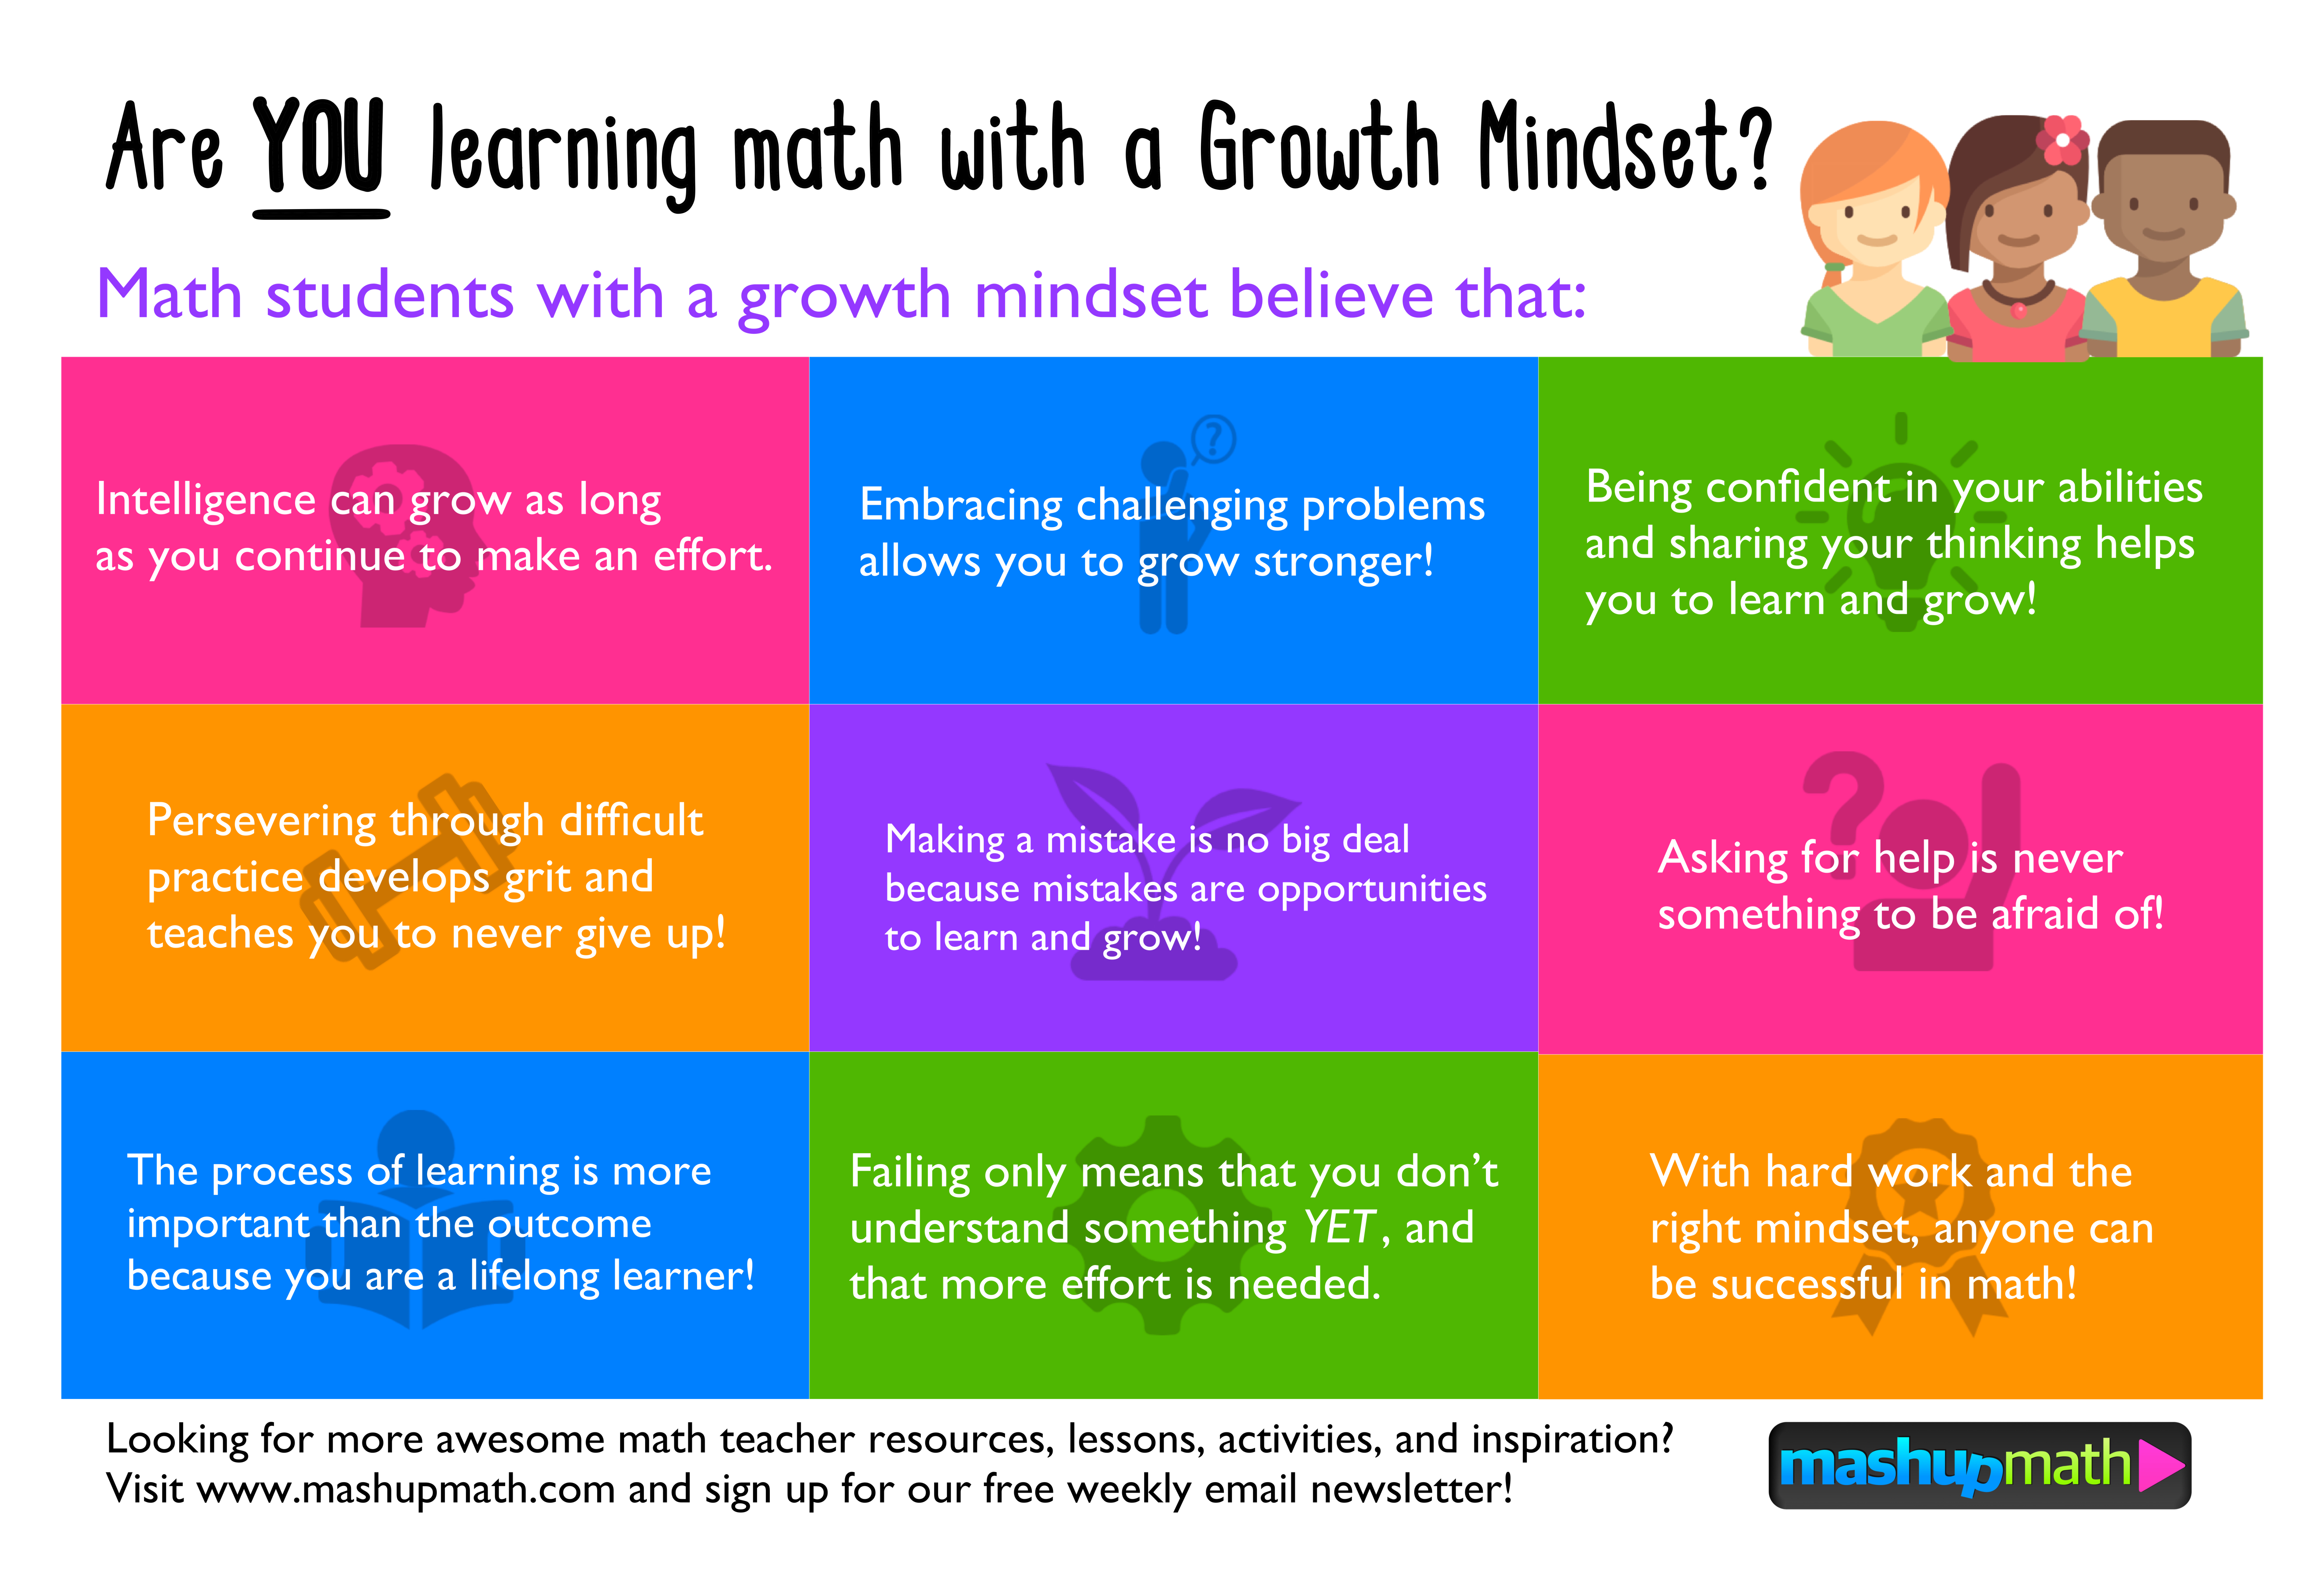 Get Your Free Growth Mindset Math Poster Middle School Mashup Math